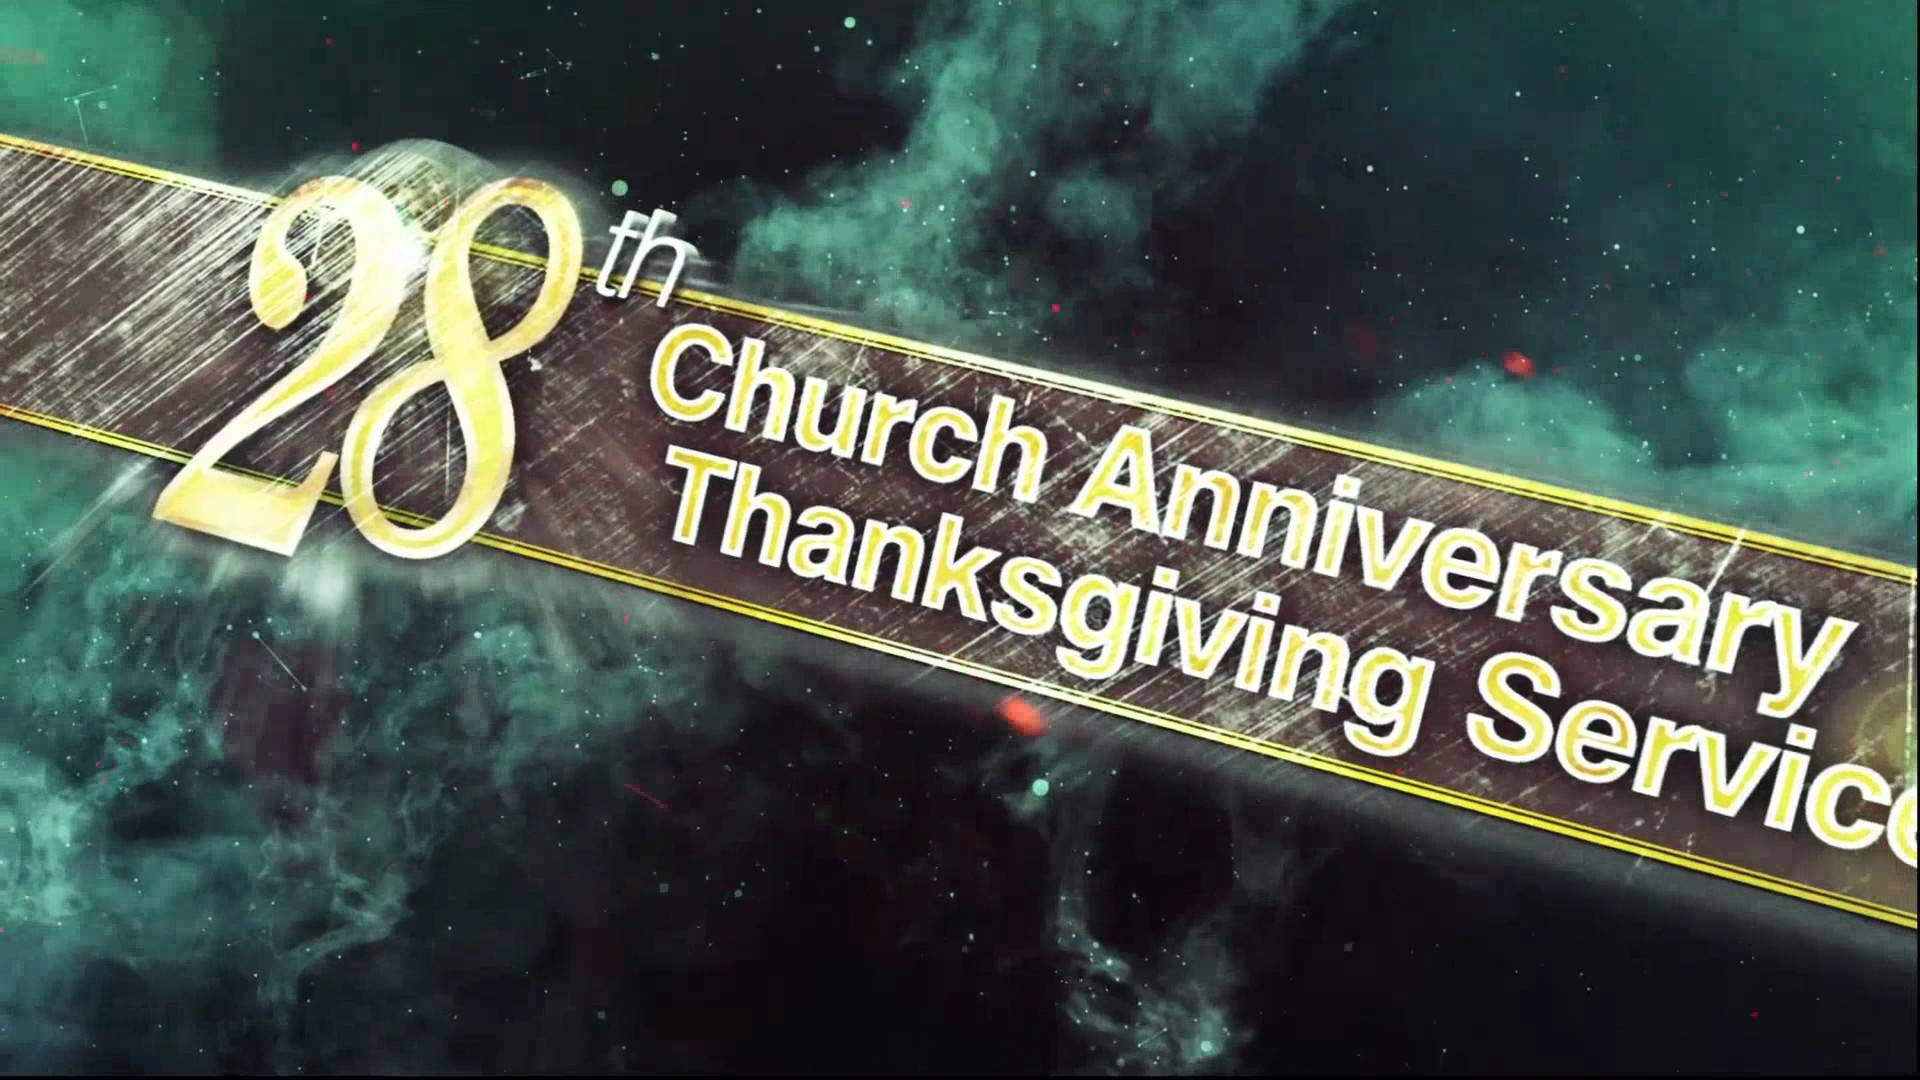 59 Church Anniversary Wallpapers on WallpaperPlay 1920x1080